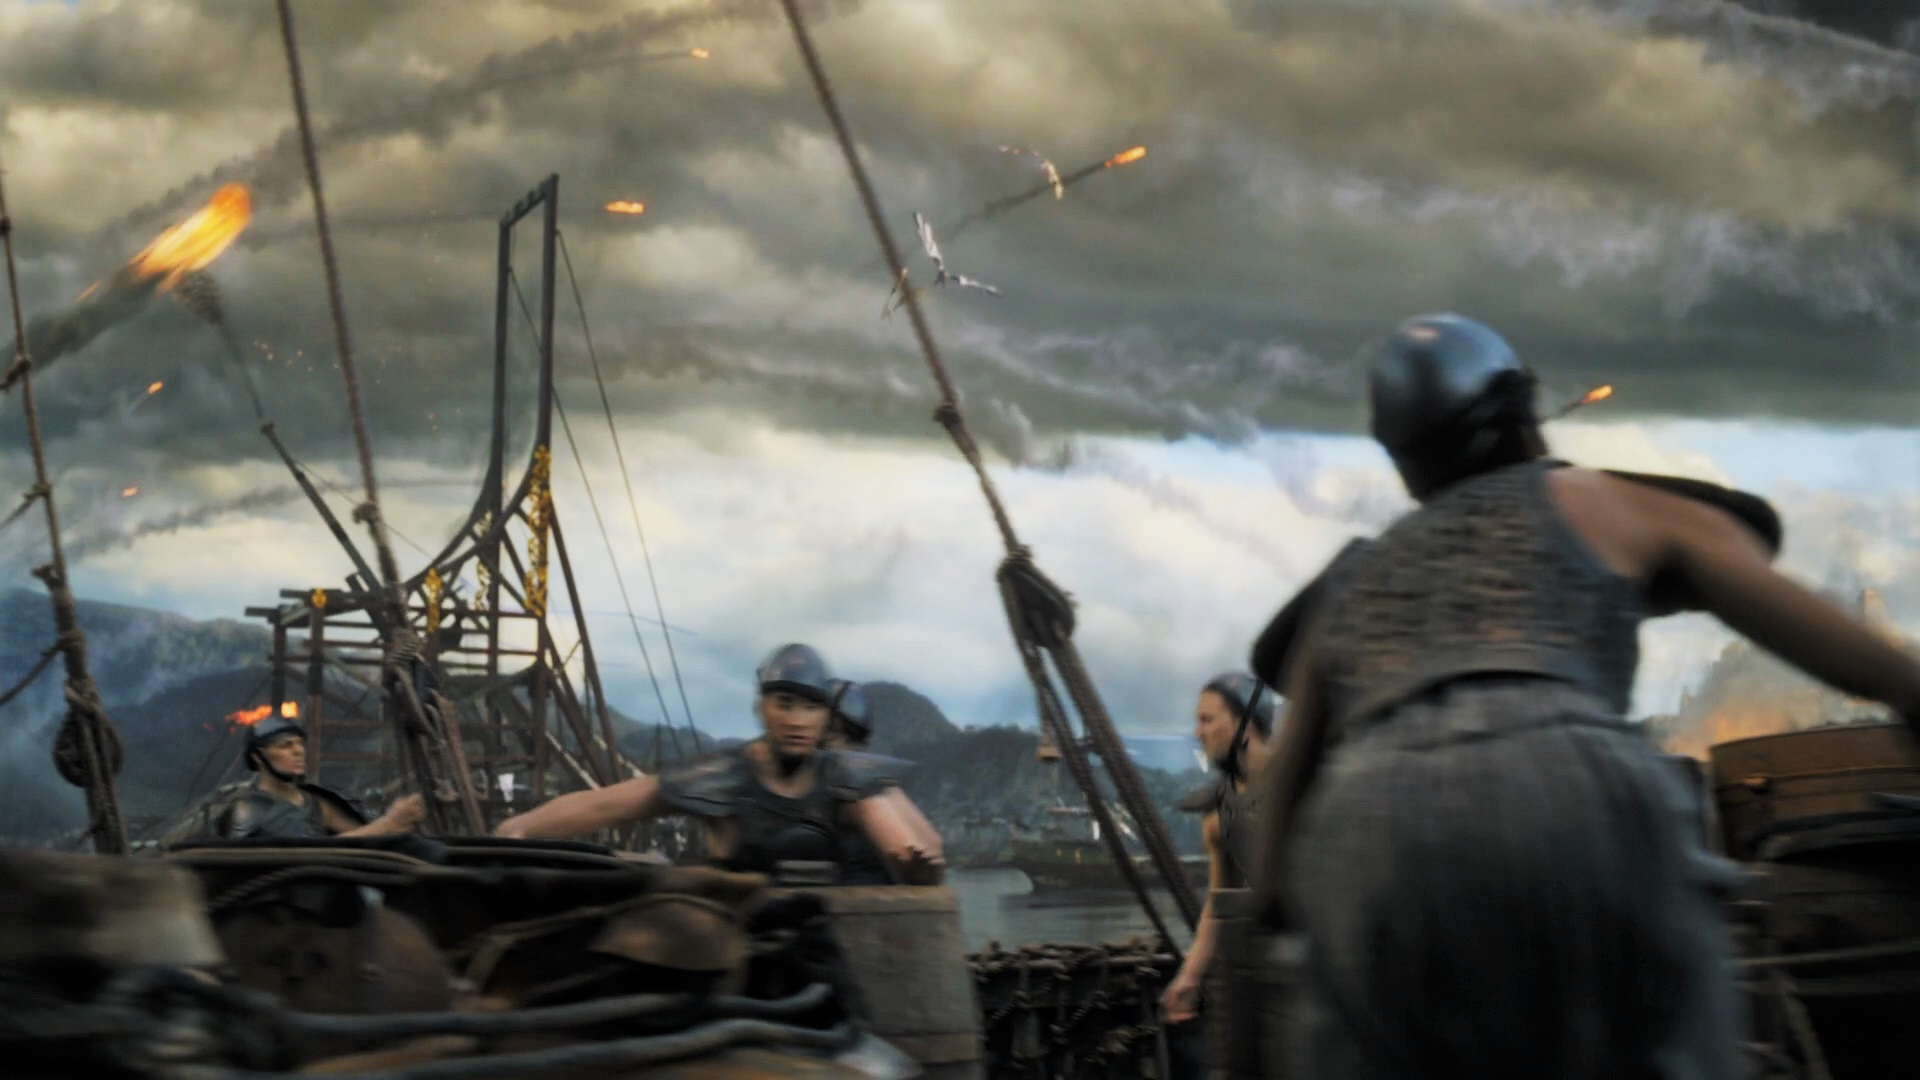 siege engines About siege engines from heroes of battle the three basic types of siege engines are battering rams, siege towers, and catapults (a category that includes a wide range of throwing machines, from ballistae to trebuchets.